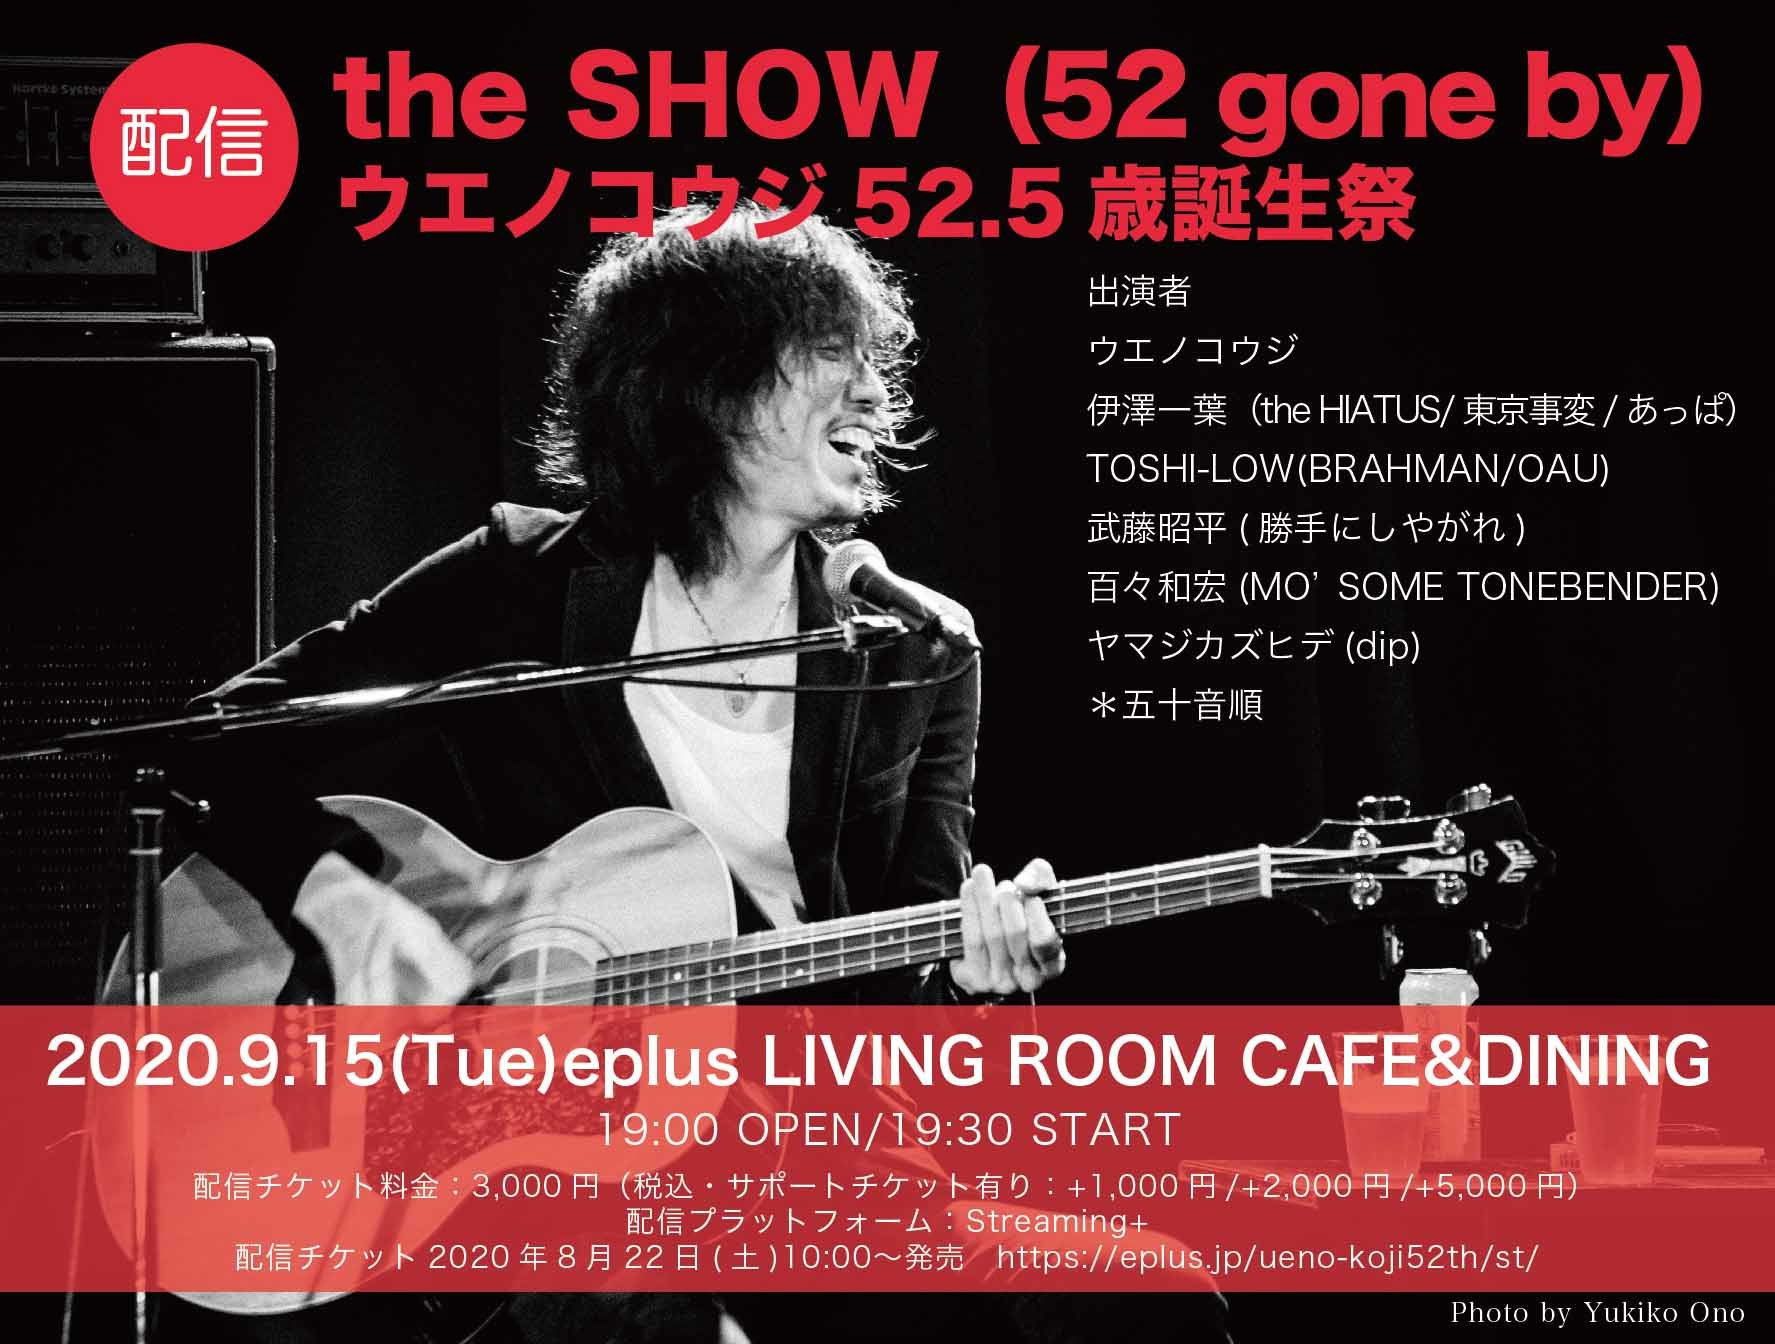 『the SHOW (gone by 52) ウエノコウジ52.5歳誕生祭』